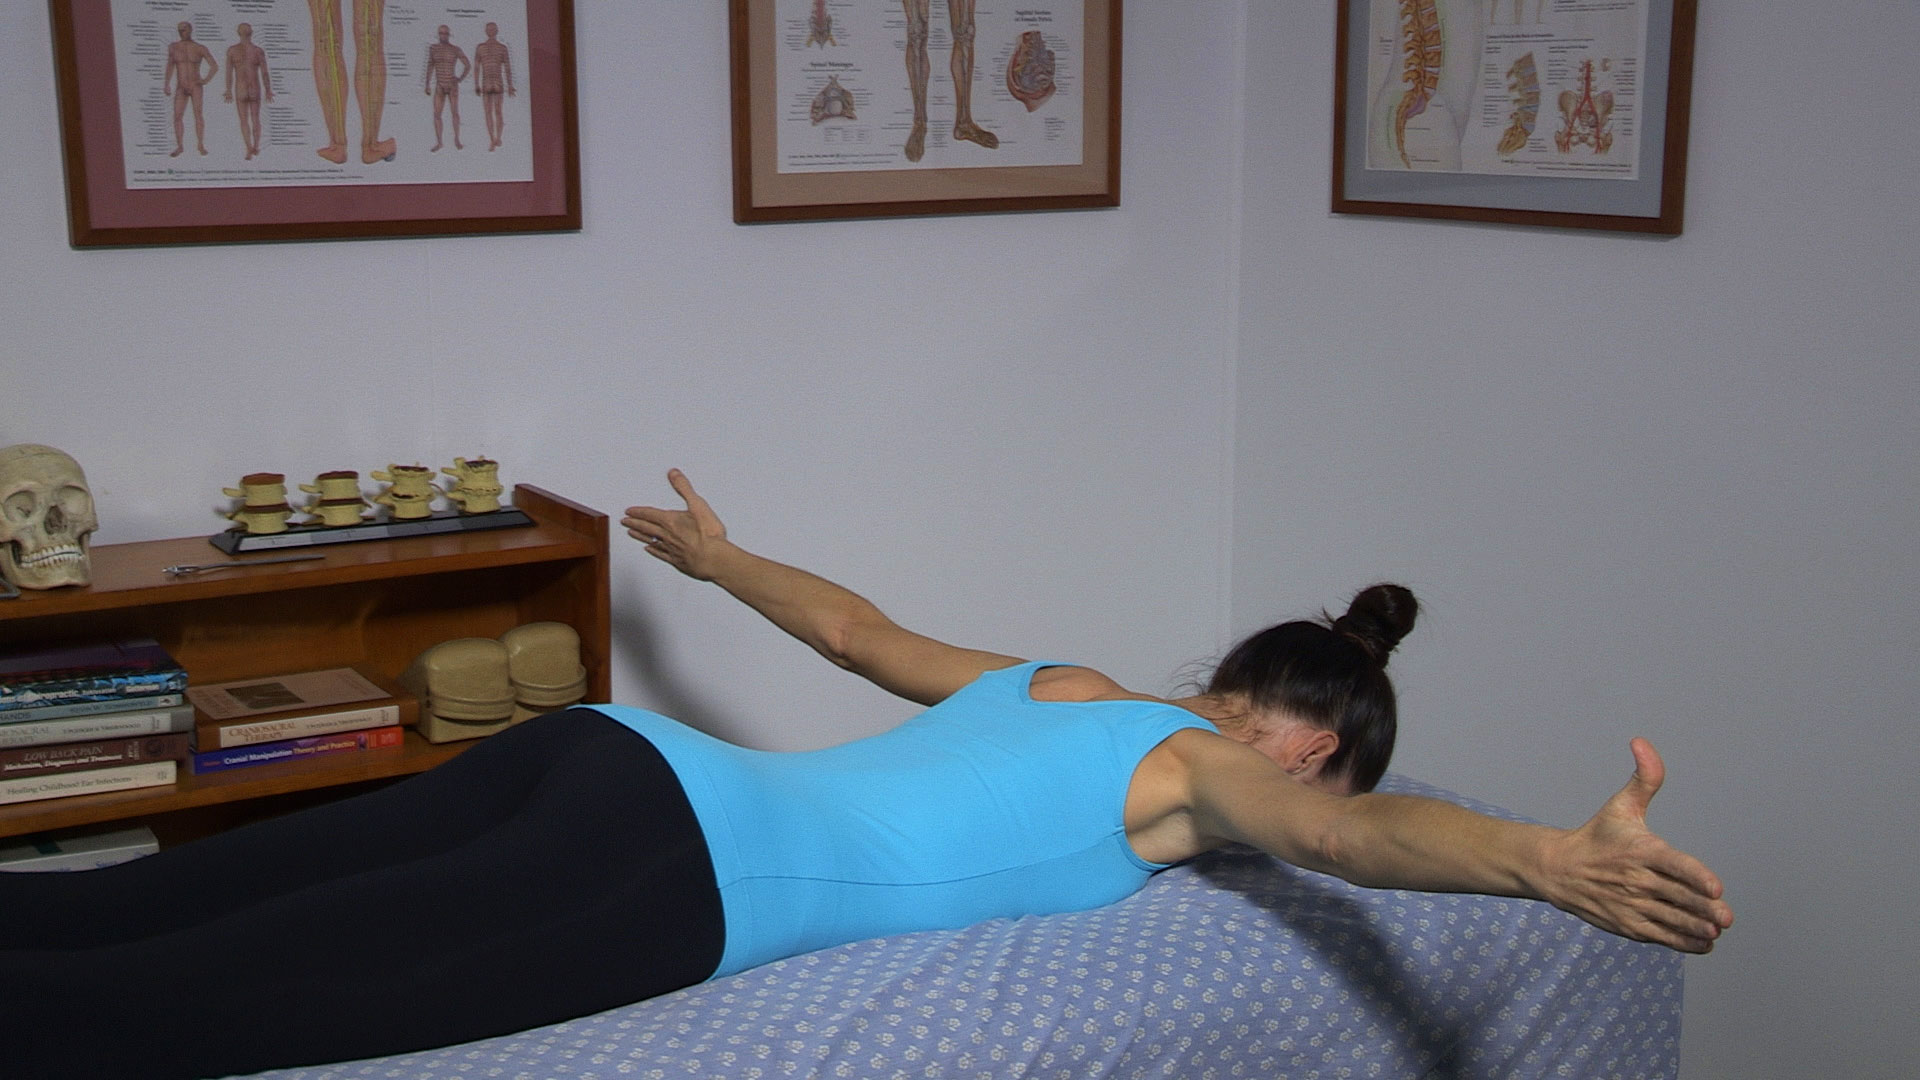 Townsville Chiropractor Providing Mid Back Strengthening Exercises